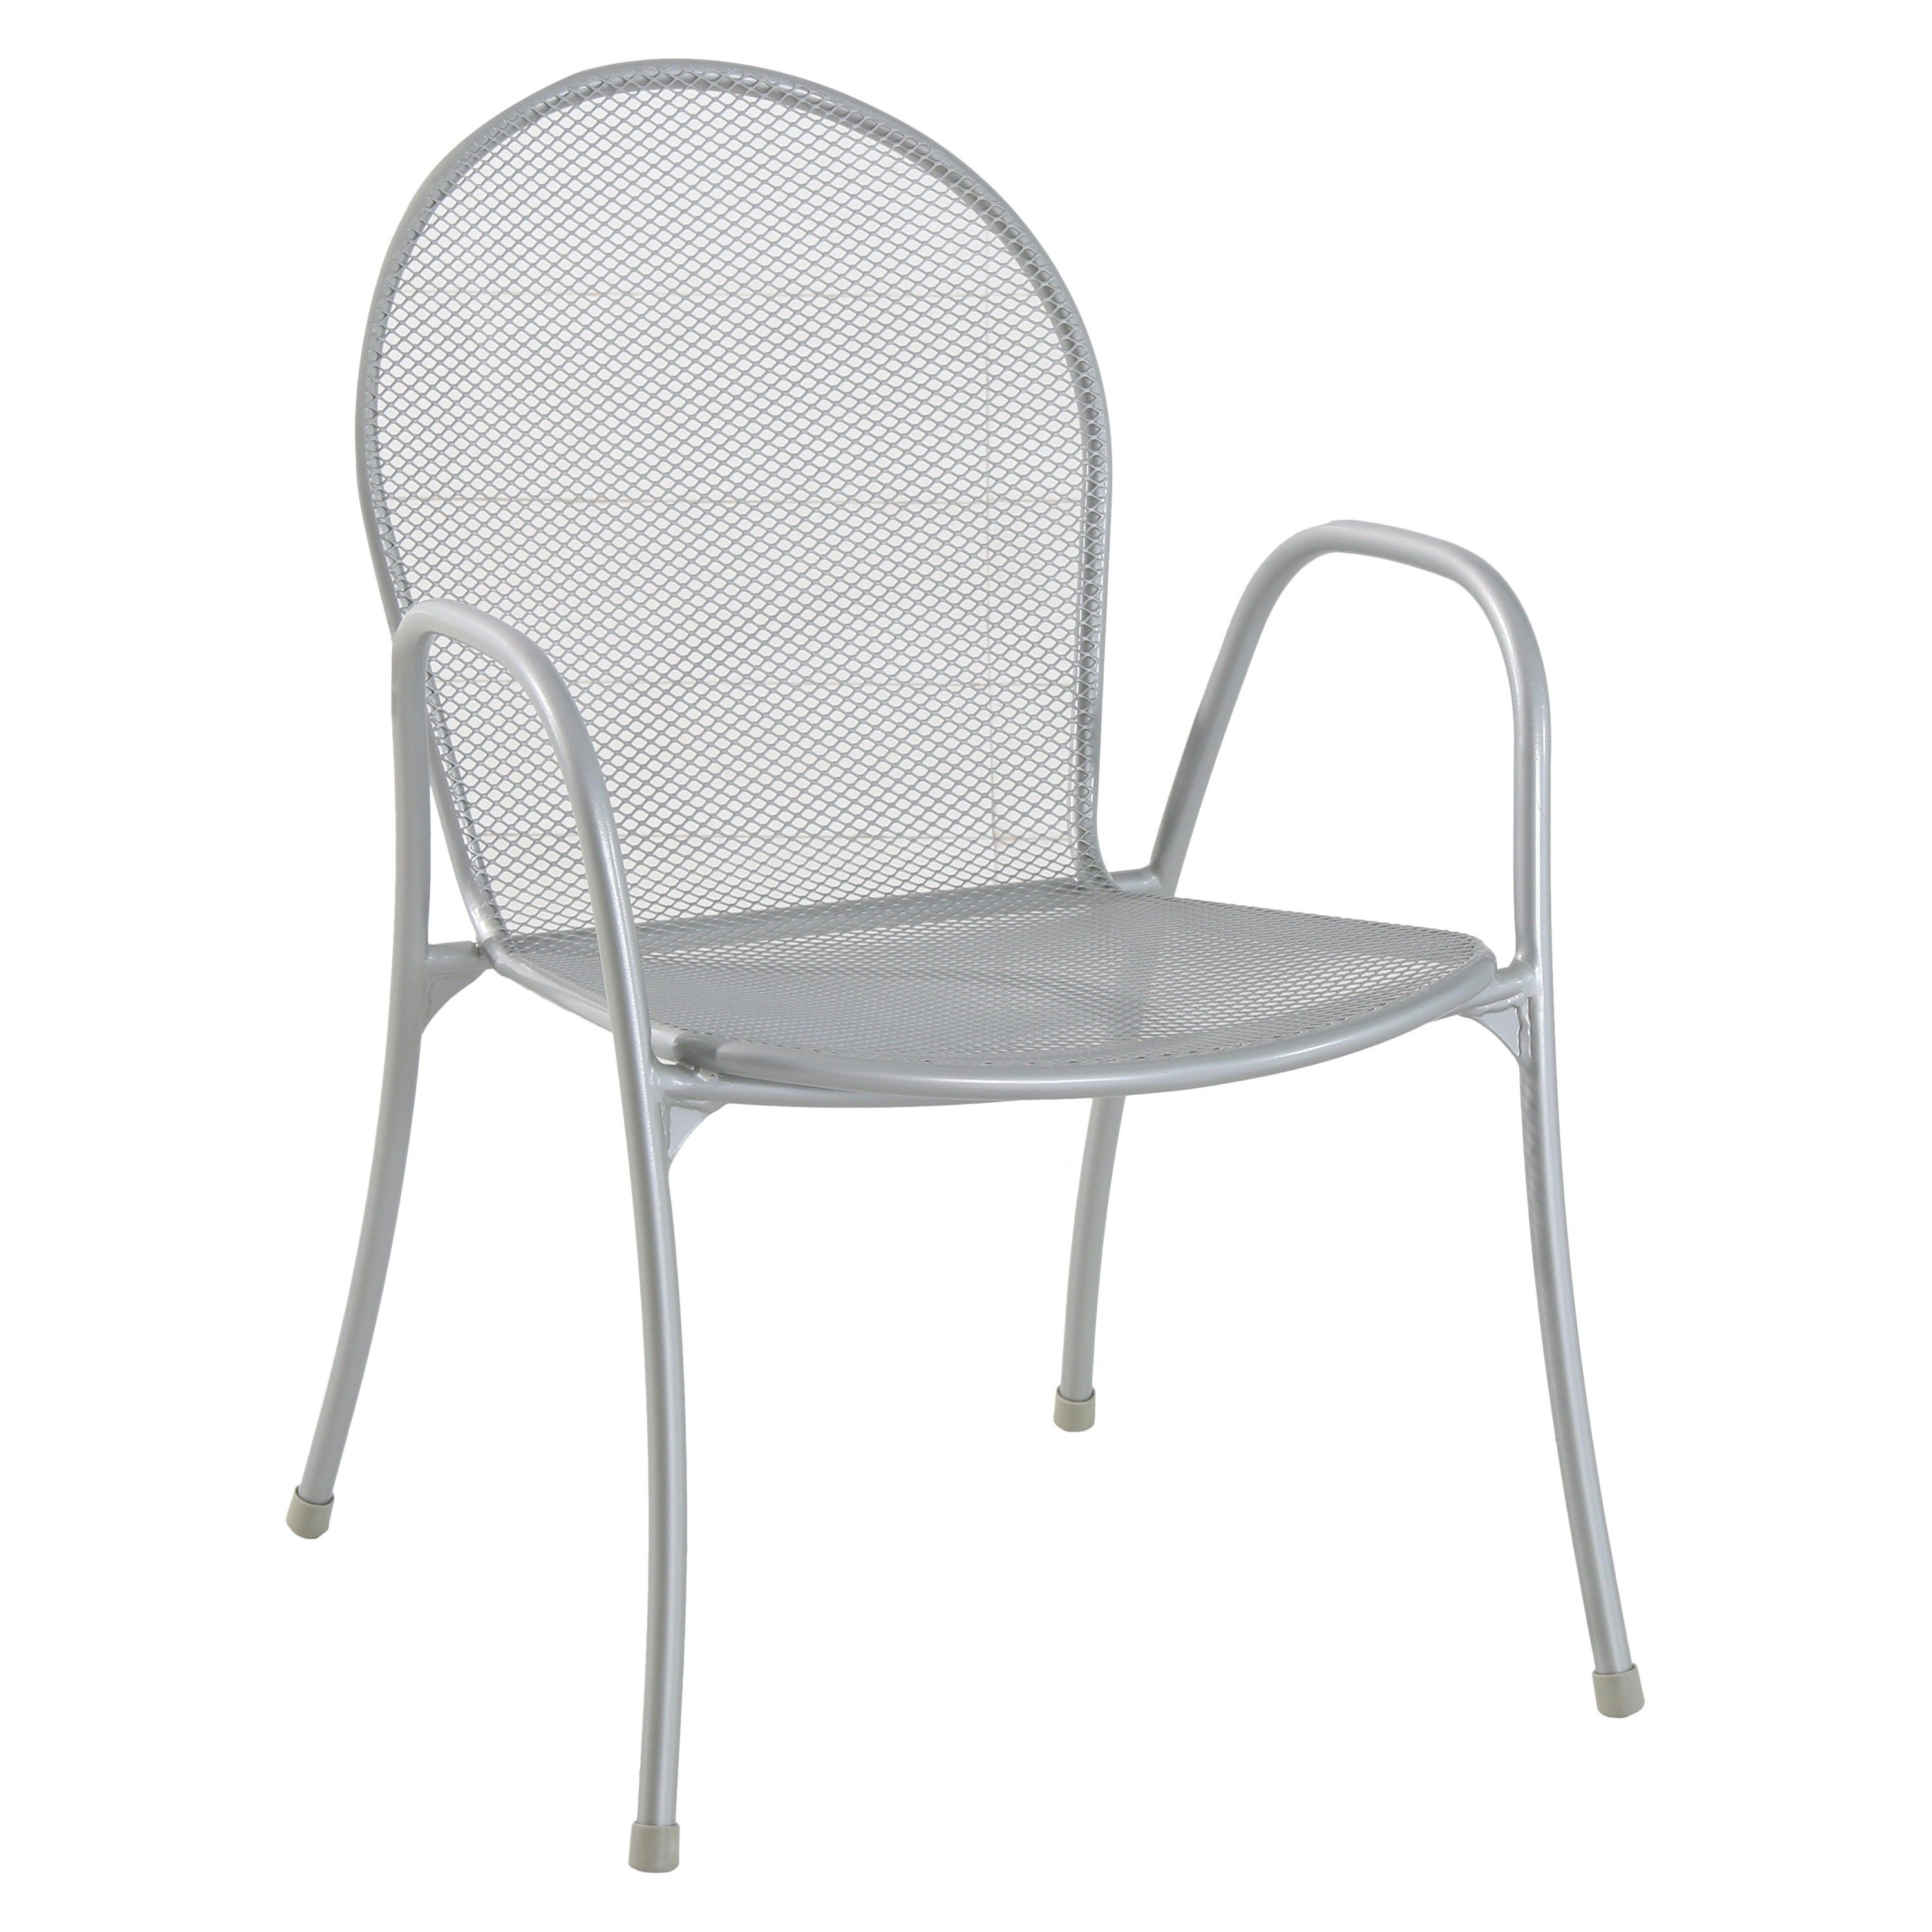 The Carmack Metal Mesh Dining Patio Chair from Threshold